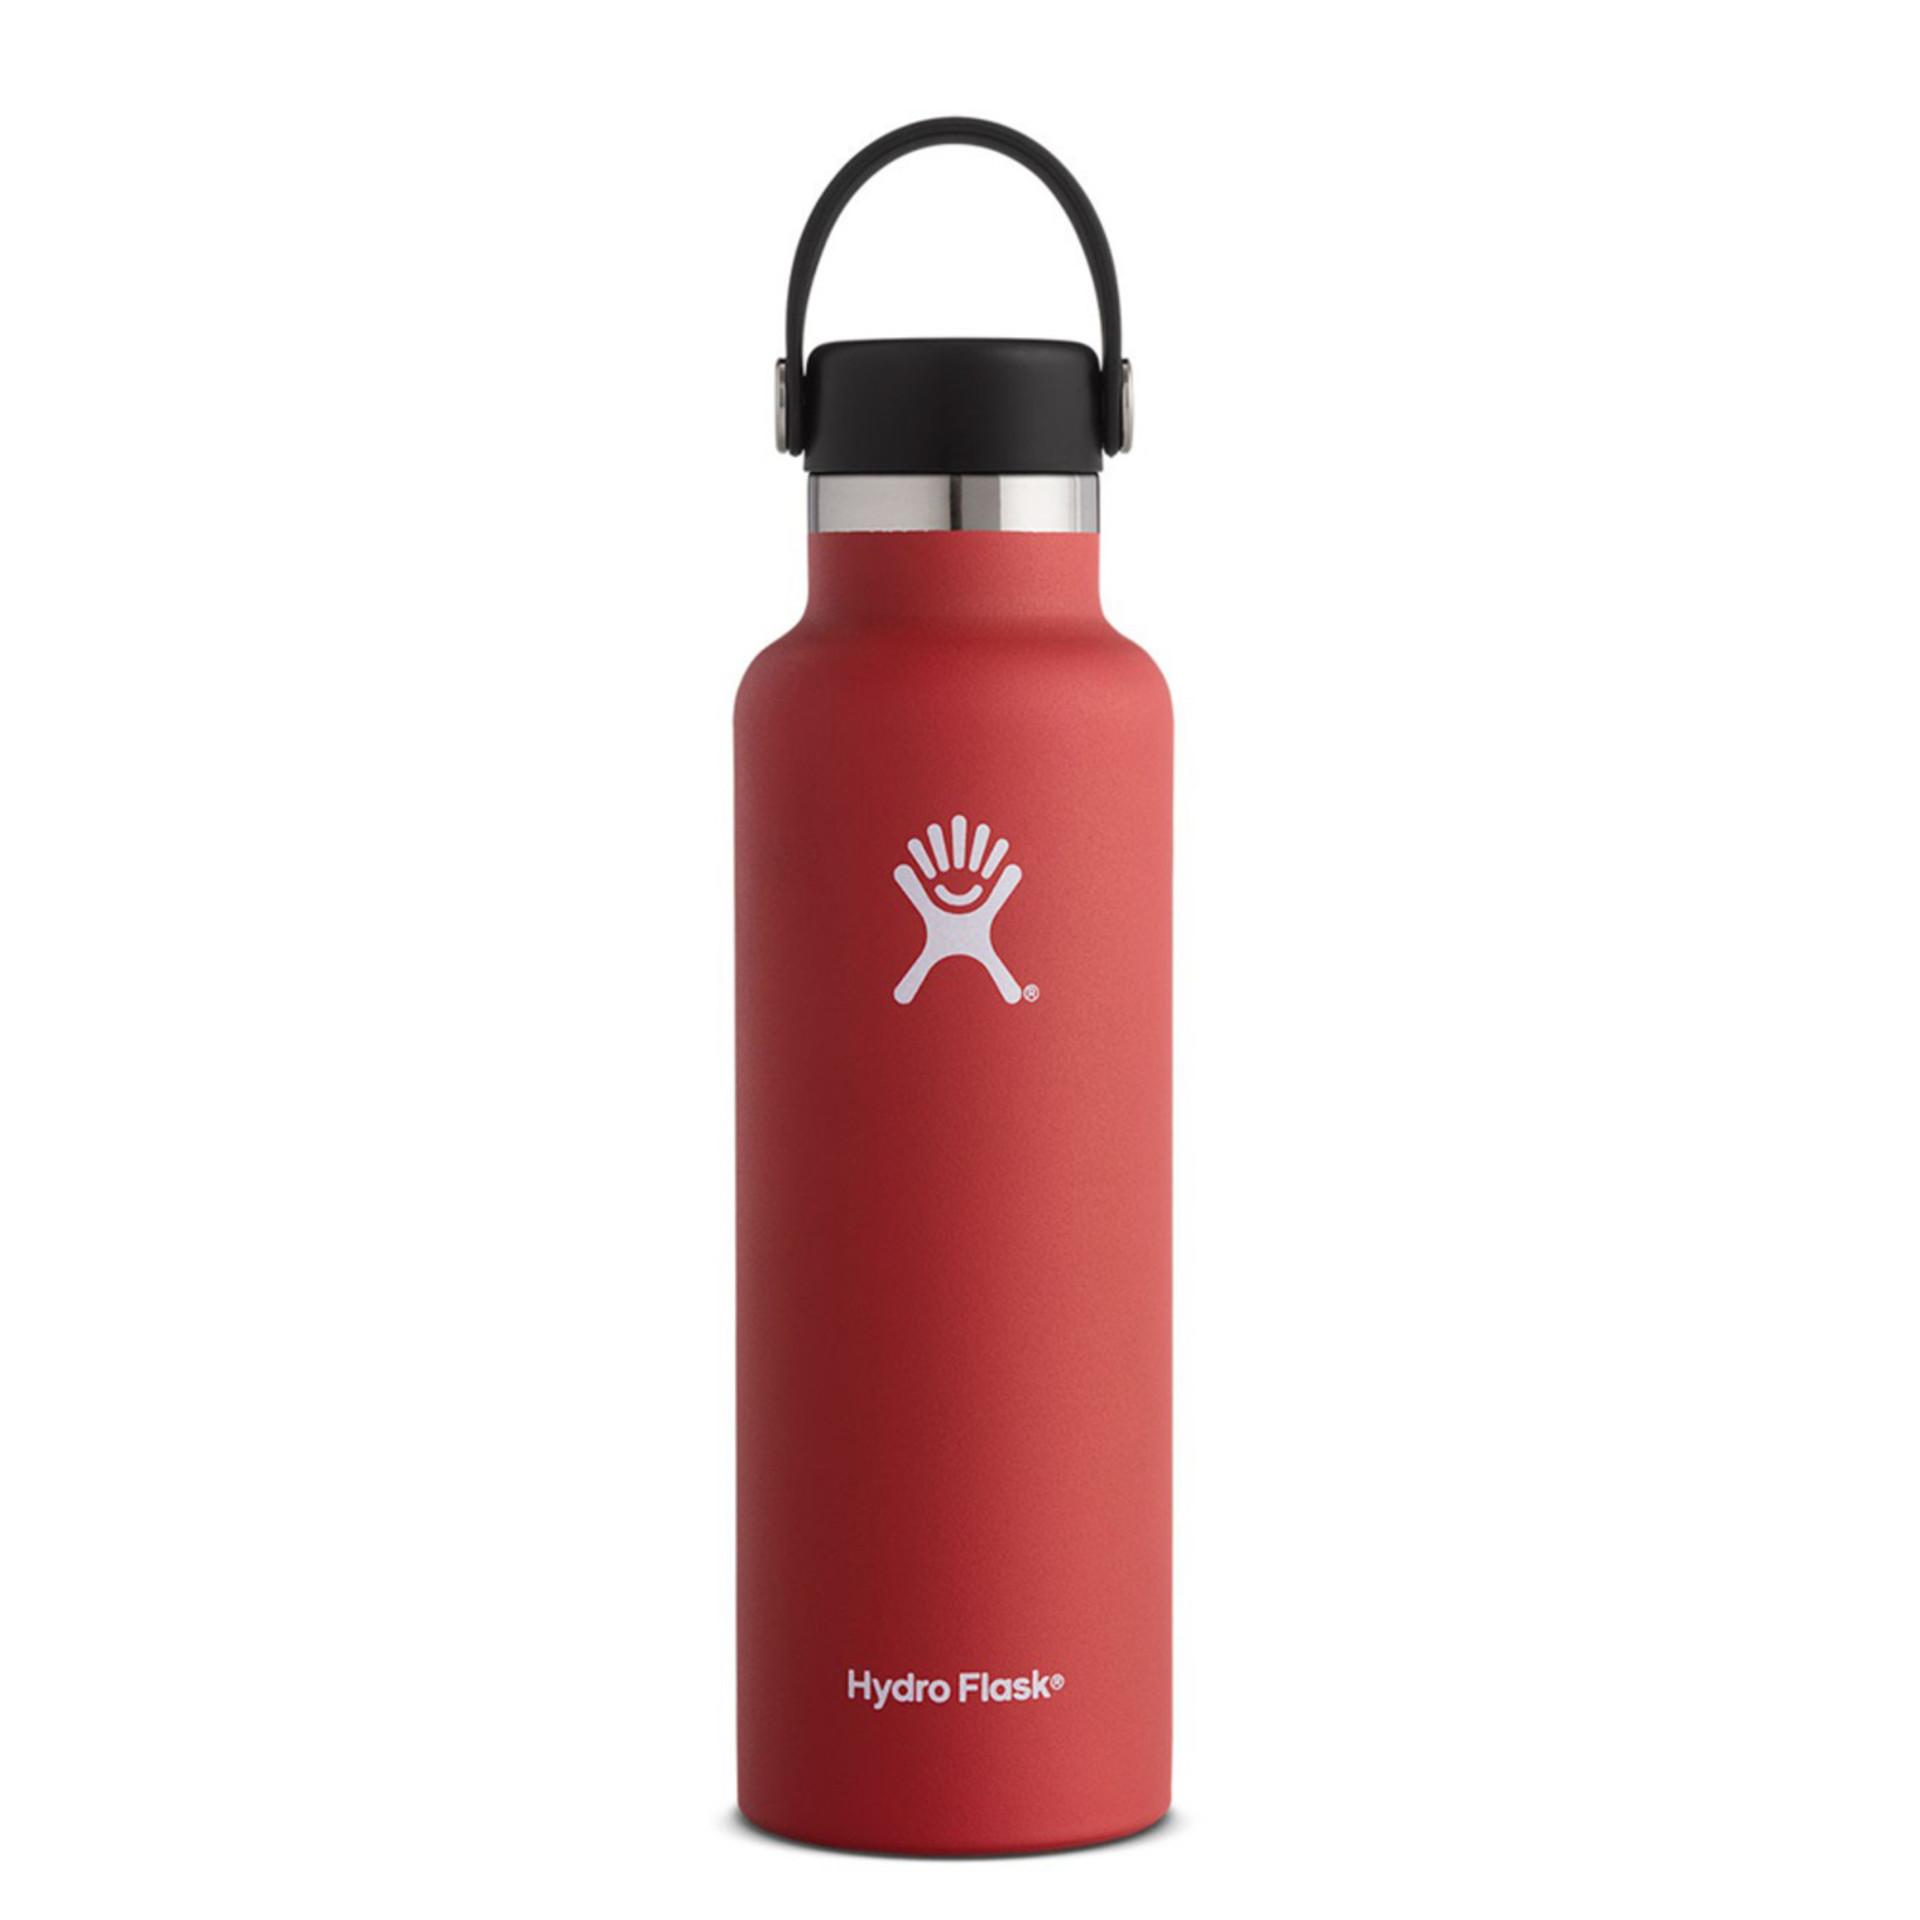 Hydro Flask Water Bottle 21oz – Lychee Red